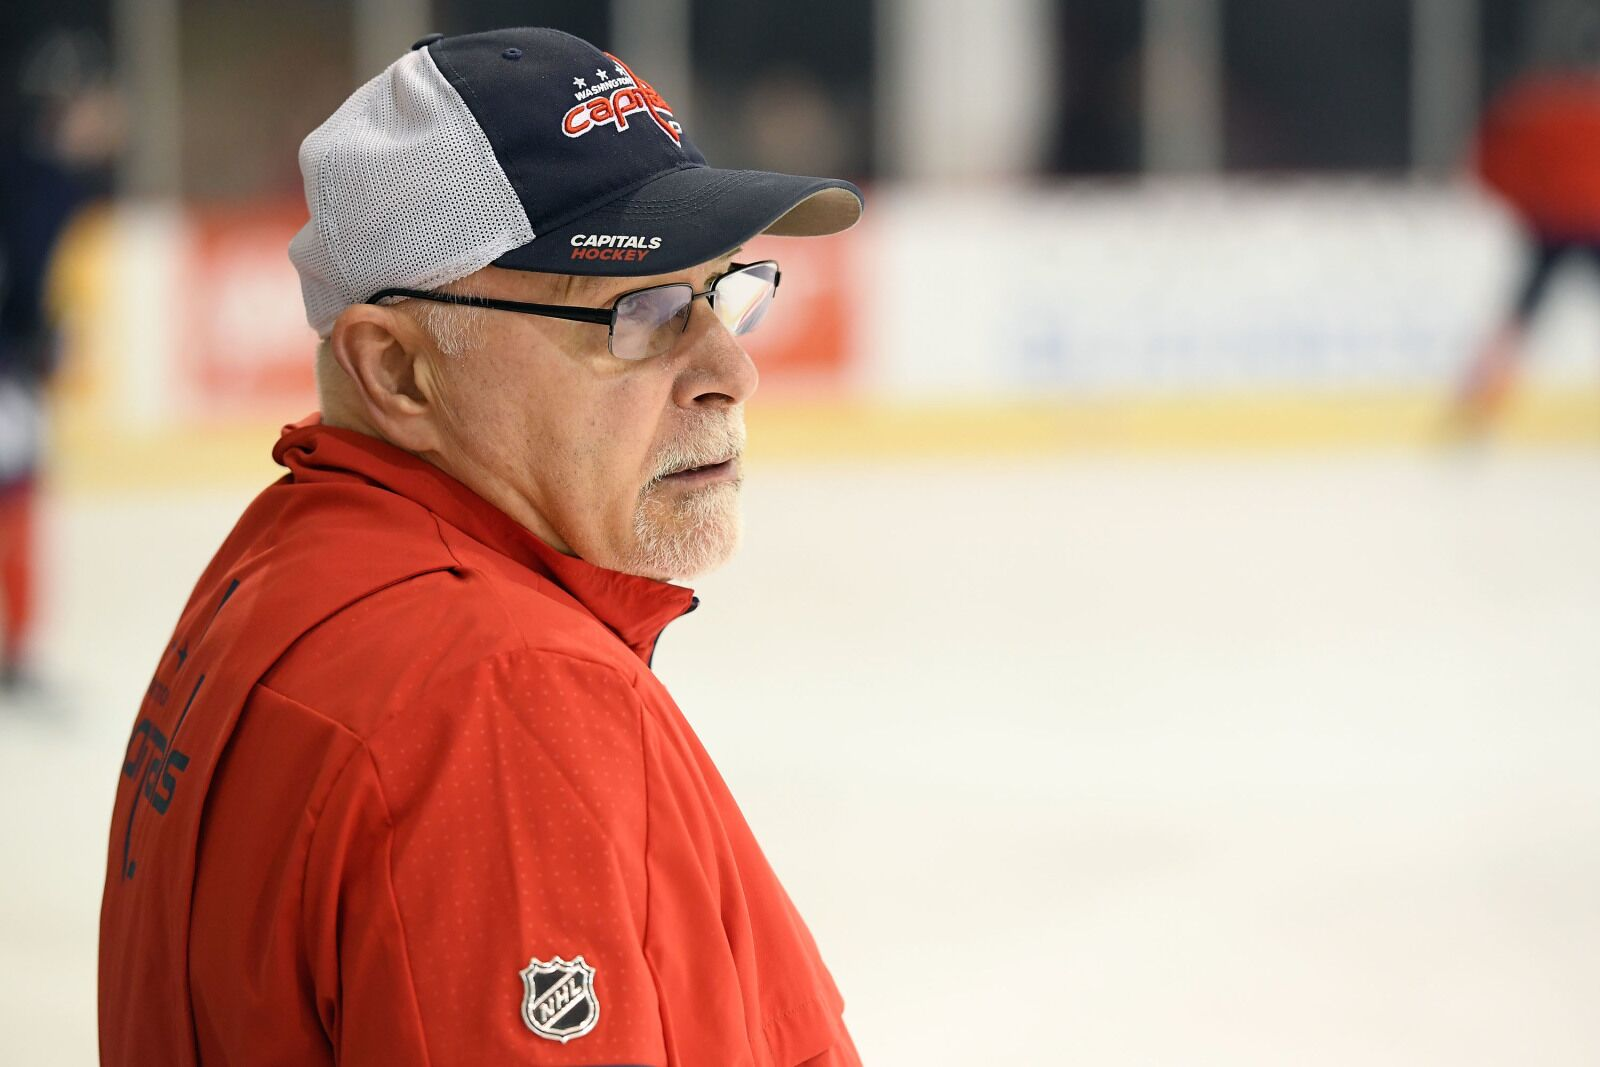 Washington Capitals coach Barry Trotz takes hot lap before Game 7